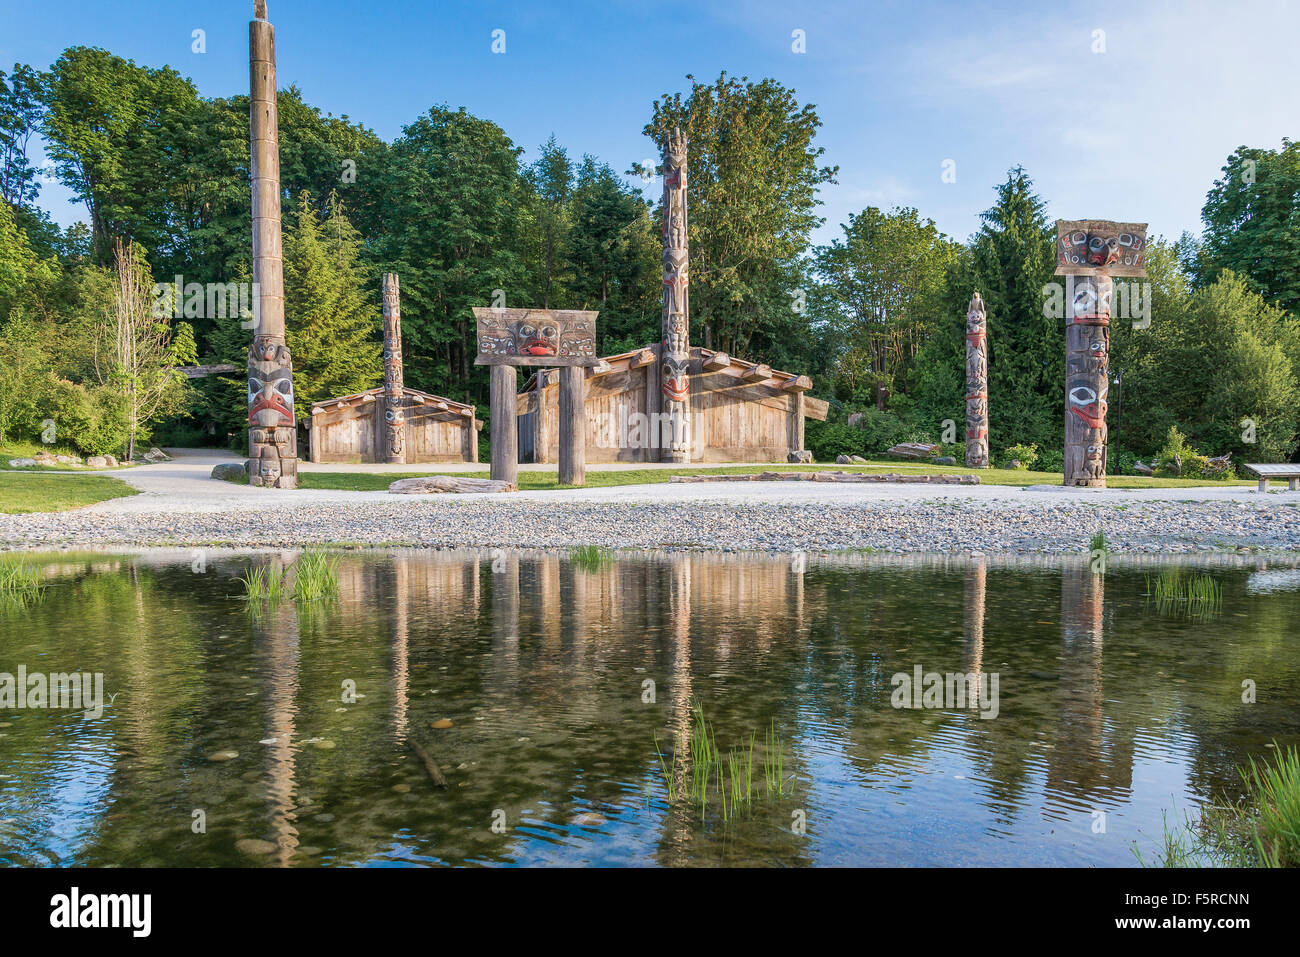 Museum of Anthropology, Vancouver, British Columbia, Canada - Stock Image